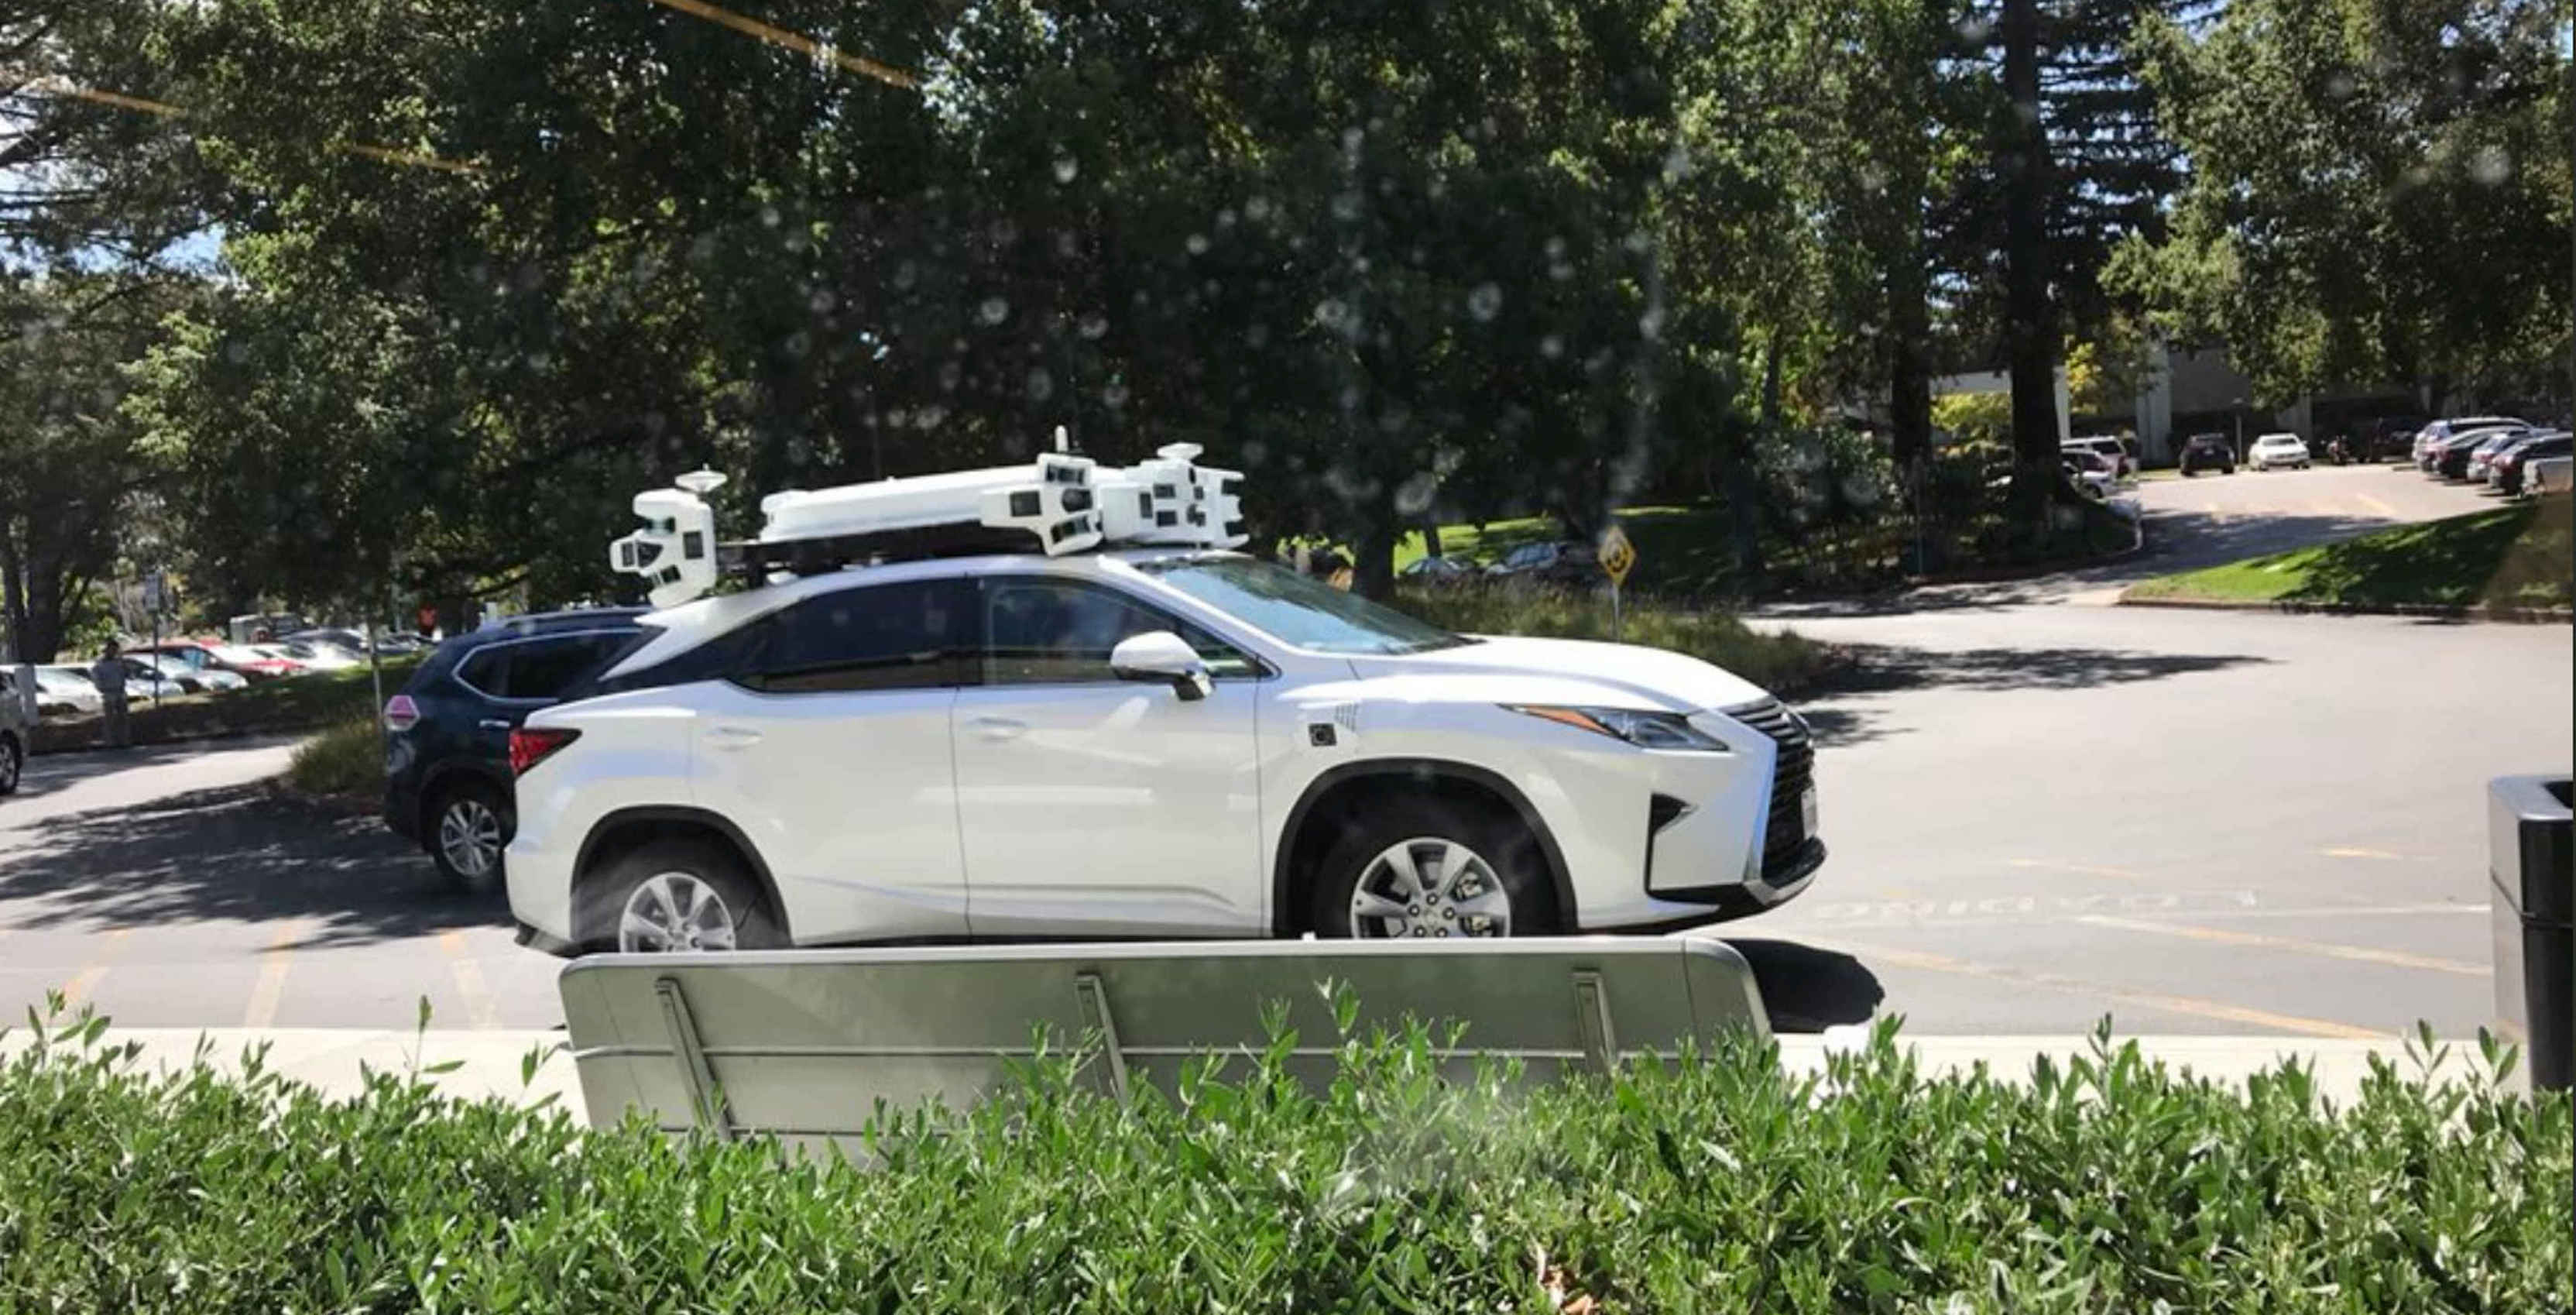 Apple now has more than 50 autonomous cars on the road